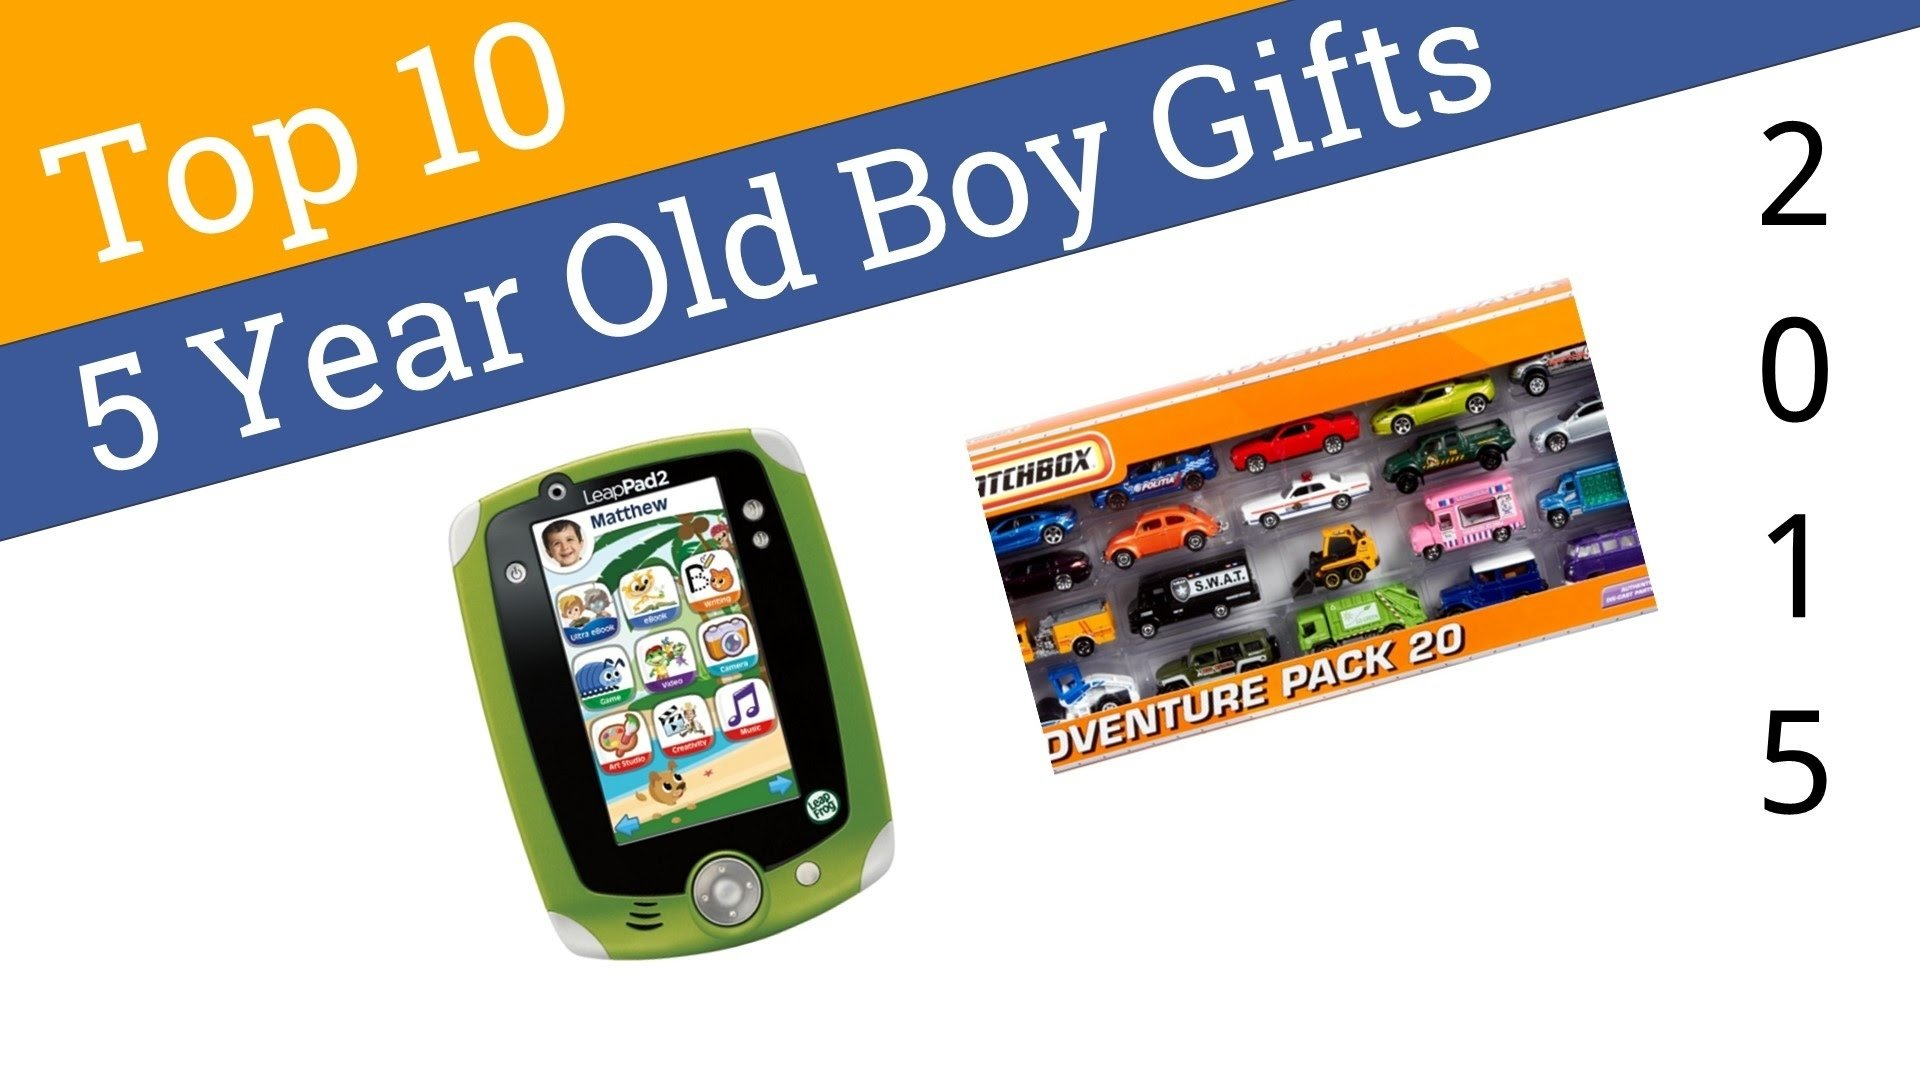 10 Unique Gift Ideas 5 Year Old Boy 10 best 5 year old boy gifts 2015 youtube 9 2021